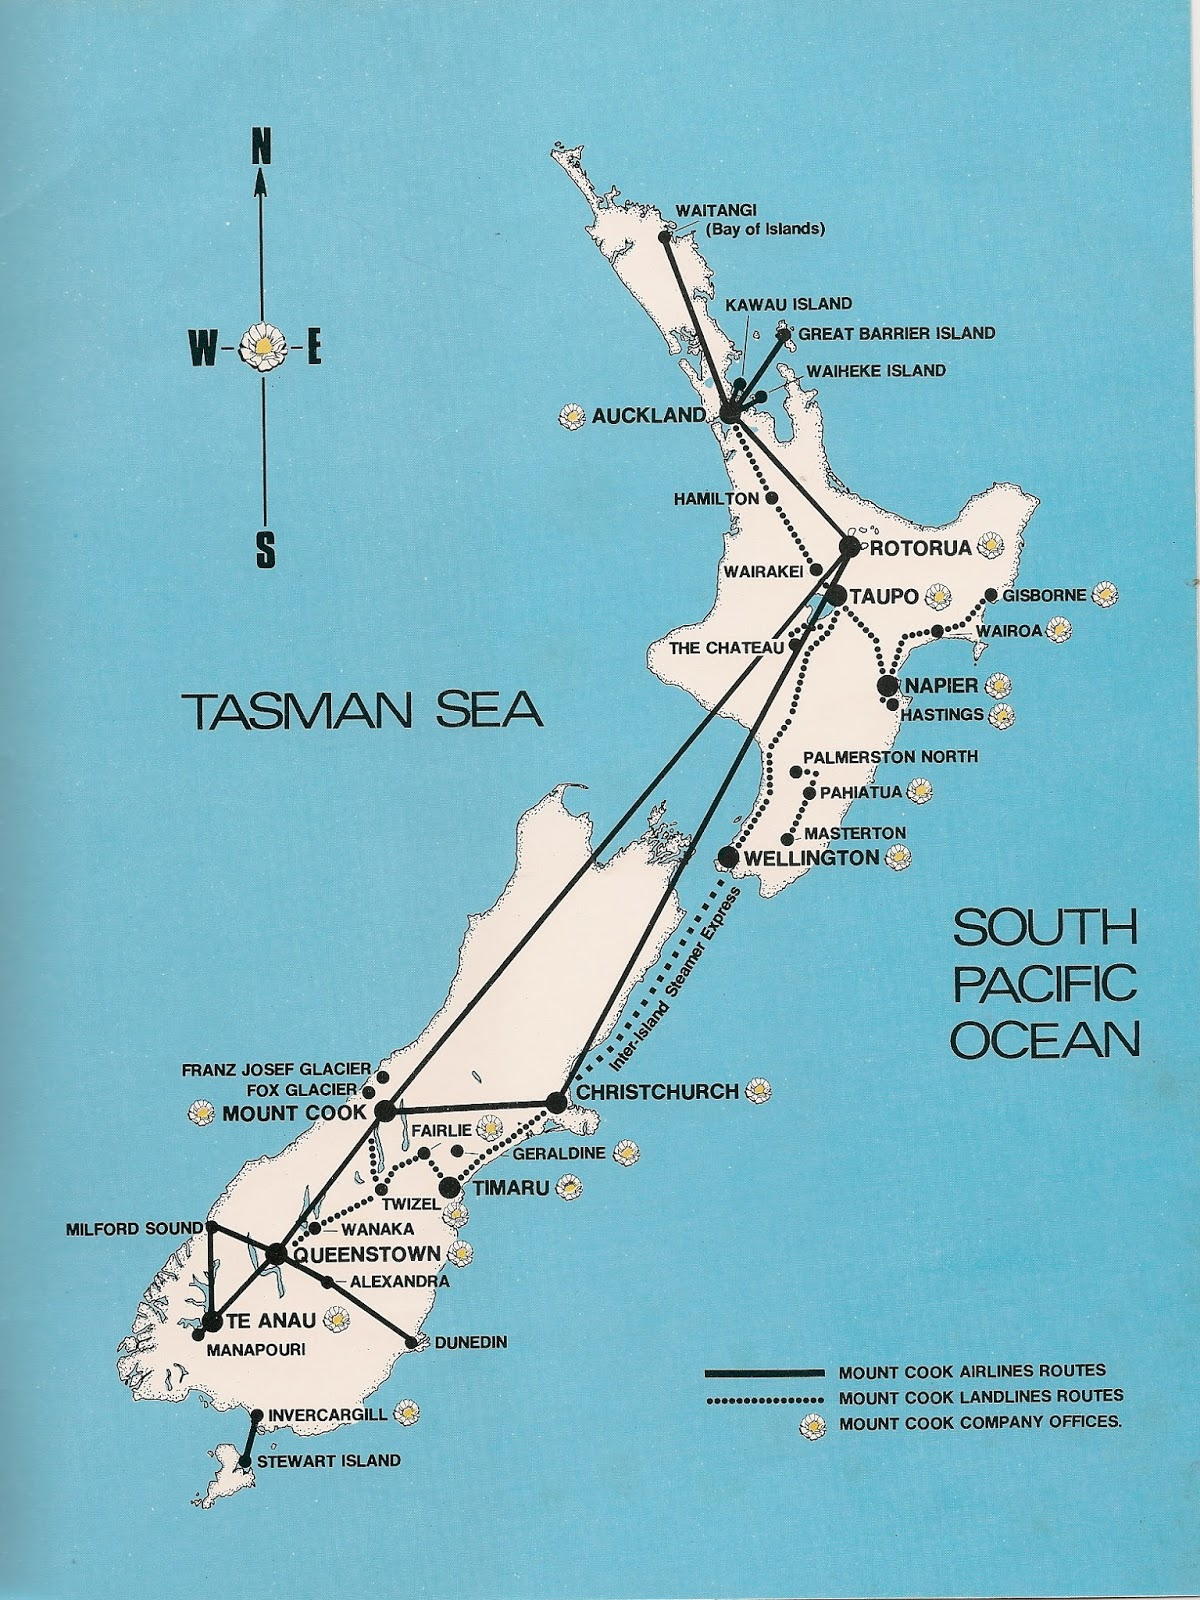 3rd Level New Zealand Mount Cook Airlines Part 2 The